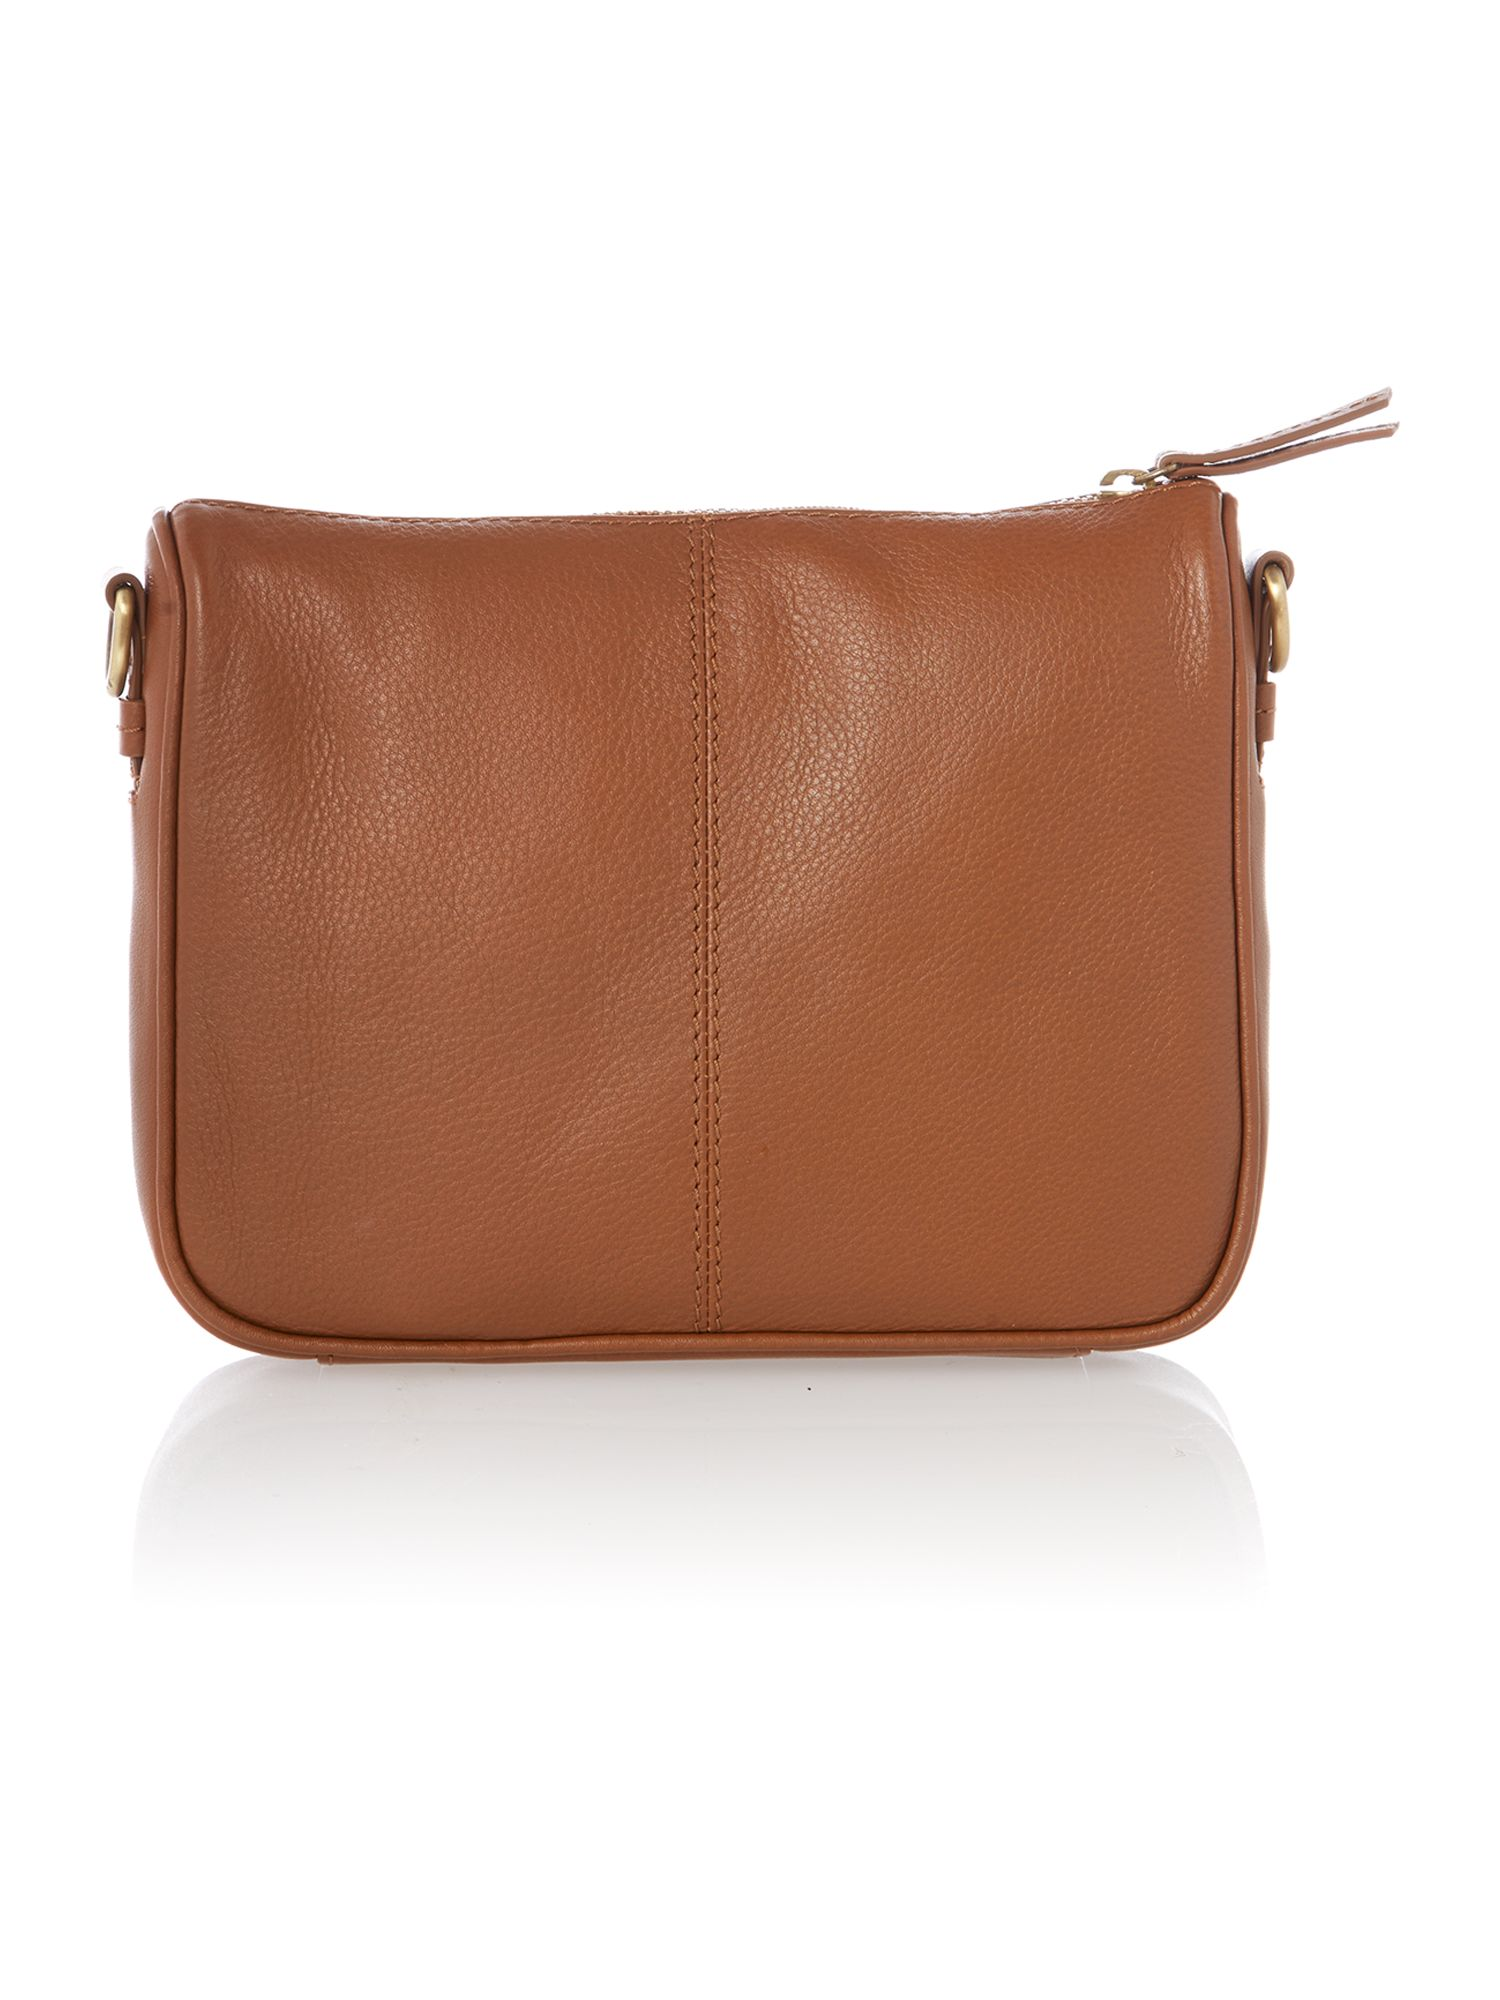 Jesse crossbody handbag